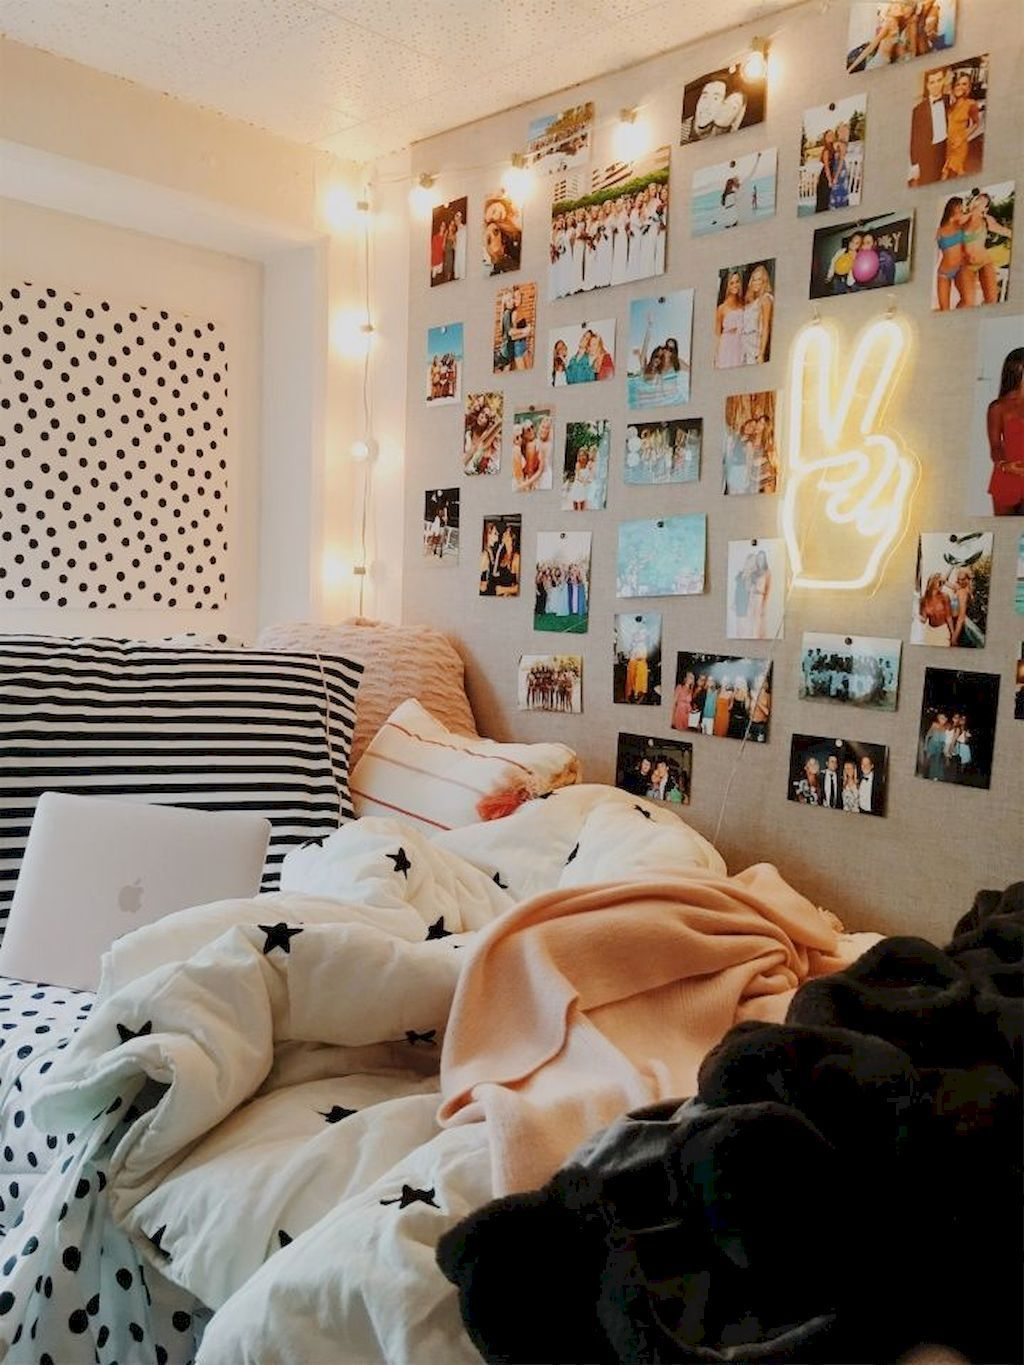 70 genius dorm room decorating ideas on a budget - HomeSpecially #tumblrroom